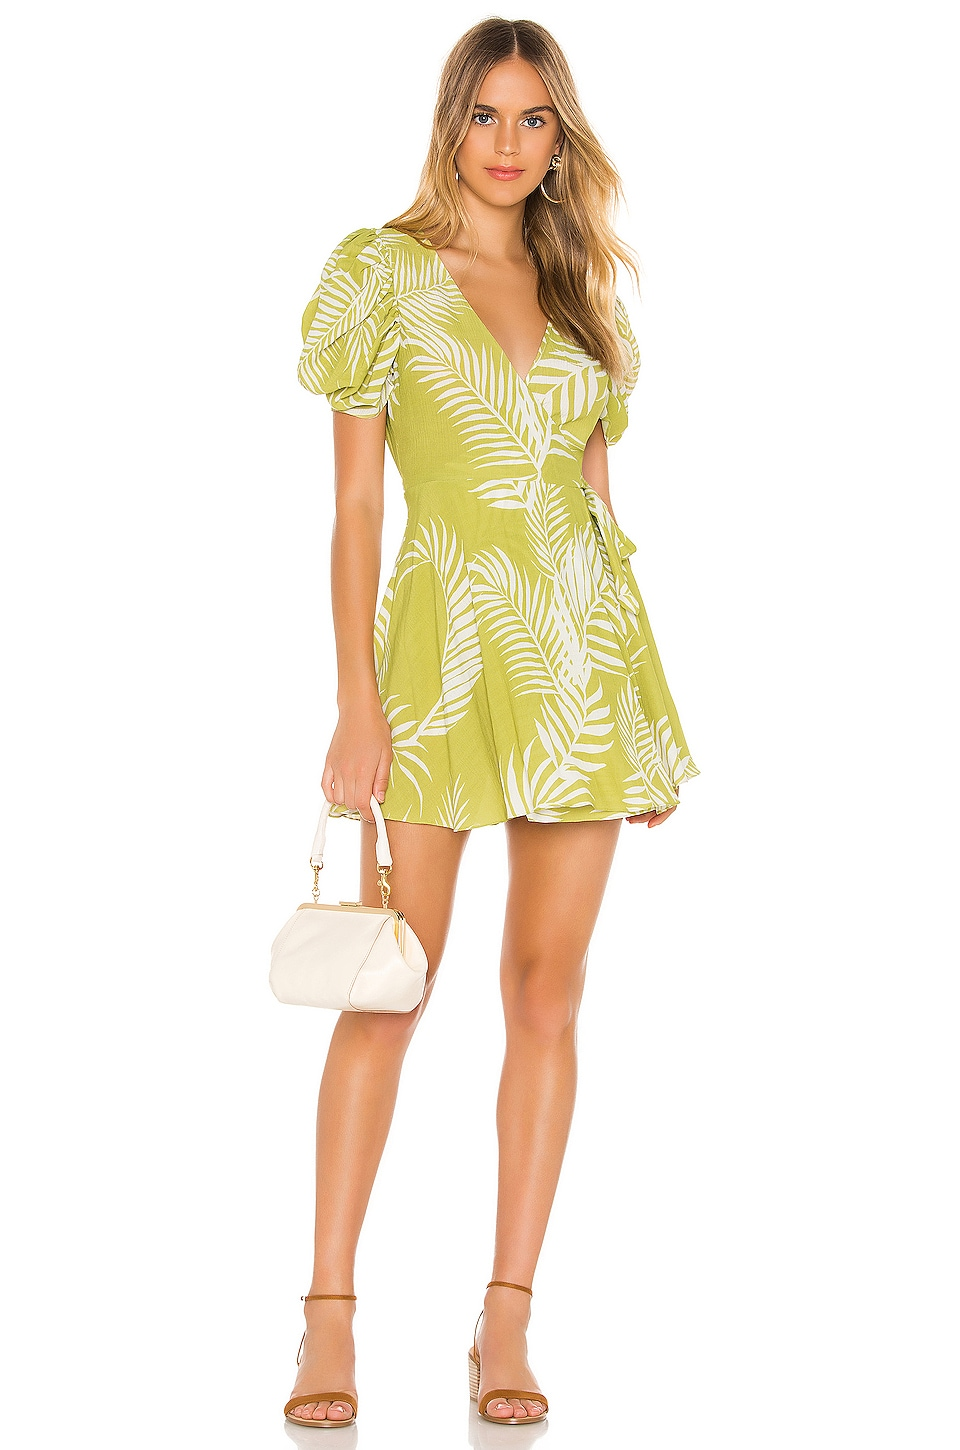 Cleobella Remington Dress in Citron